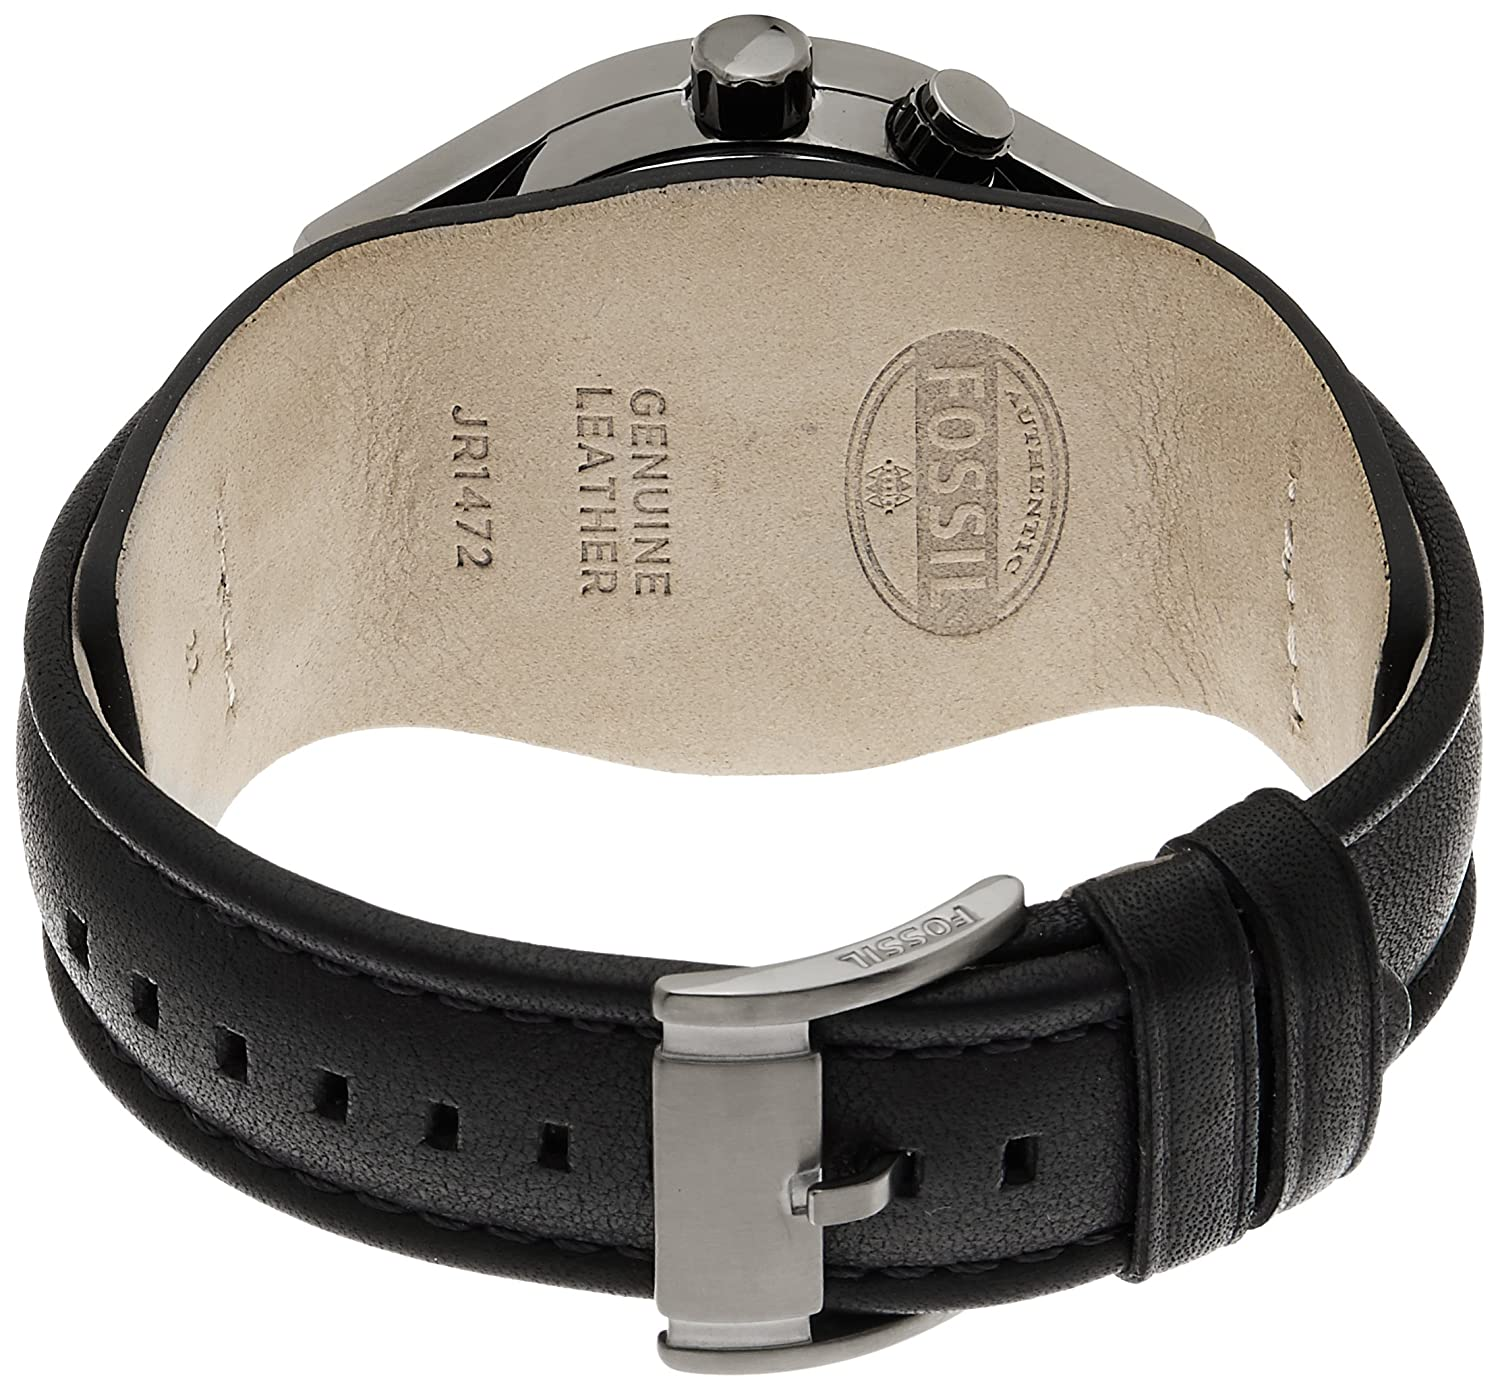 Amazon.com: Fossil Mens JR1472 Coachman Stainless Steel Ana-Digi Watch with Black Leather Band: Watches